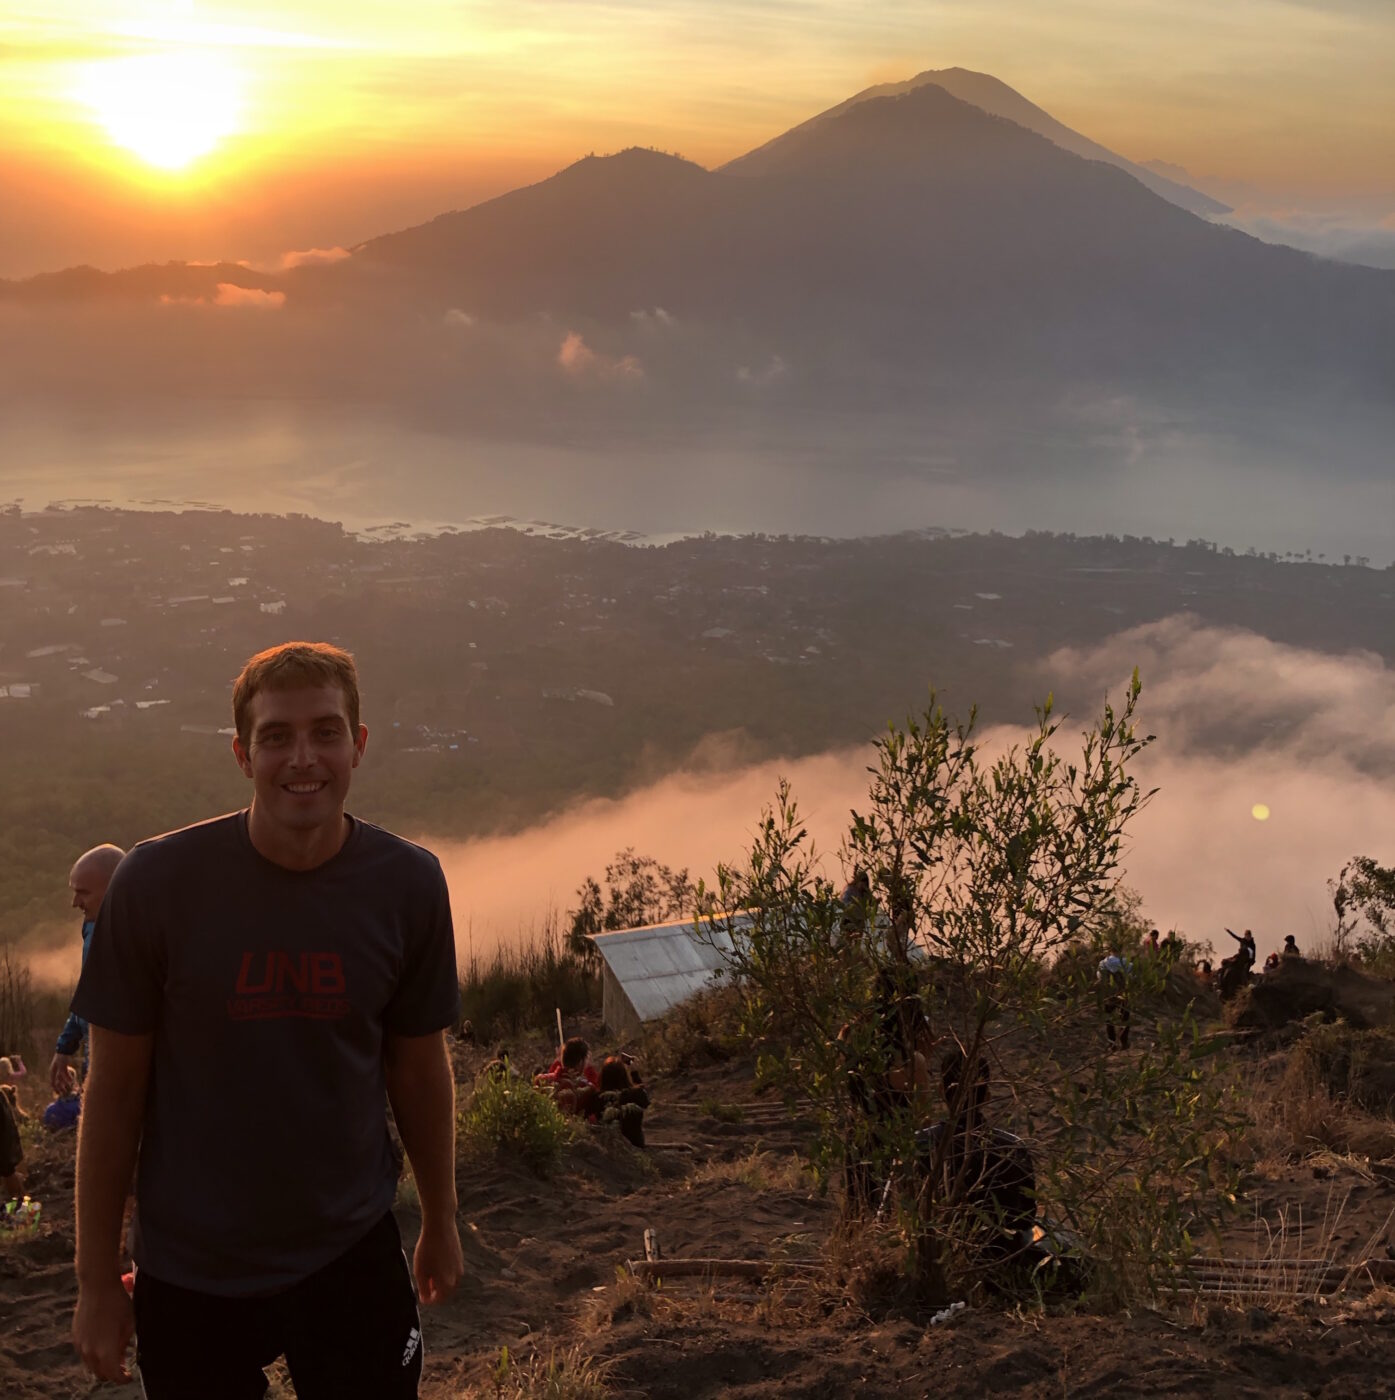 Brandon stands in the bottom left in a grey tshirt smiling against a beautiful sunset with mountains, mist, and a sandy grassy landscape.